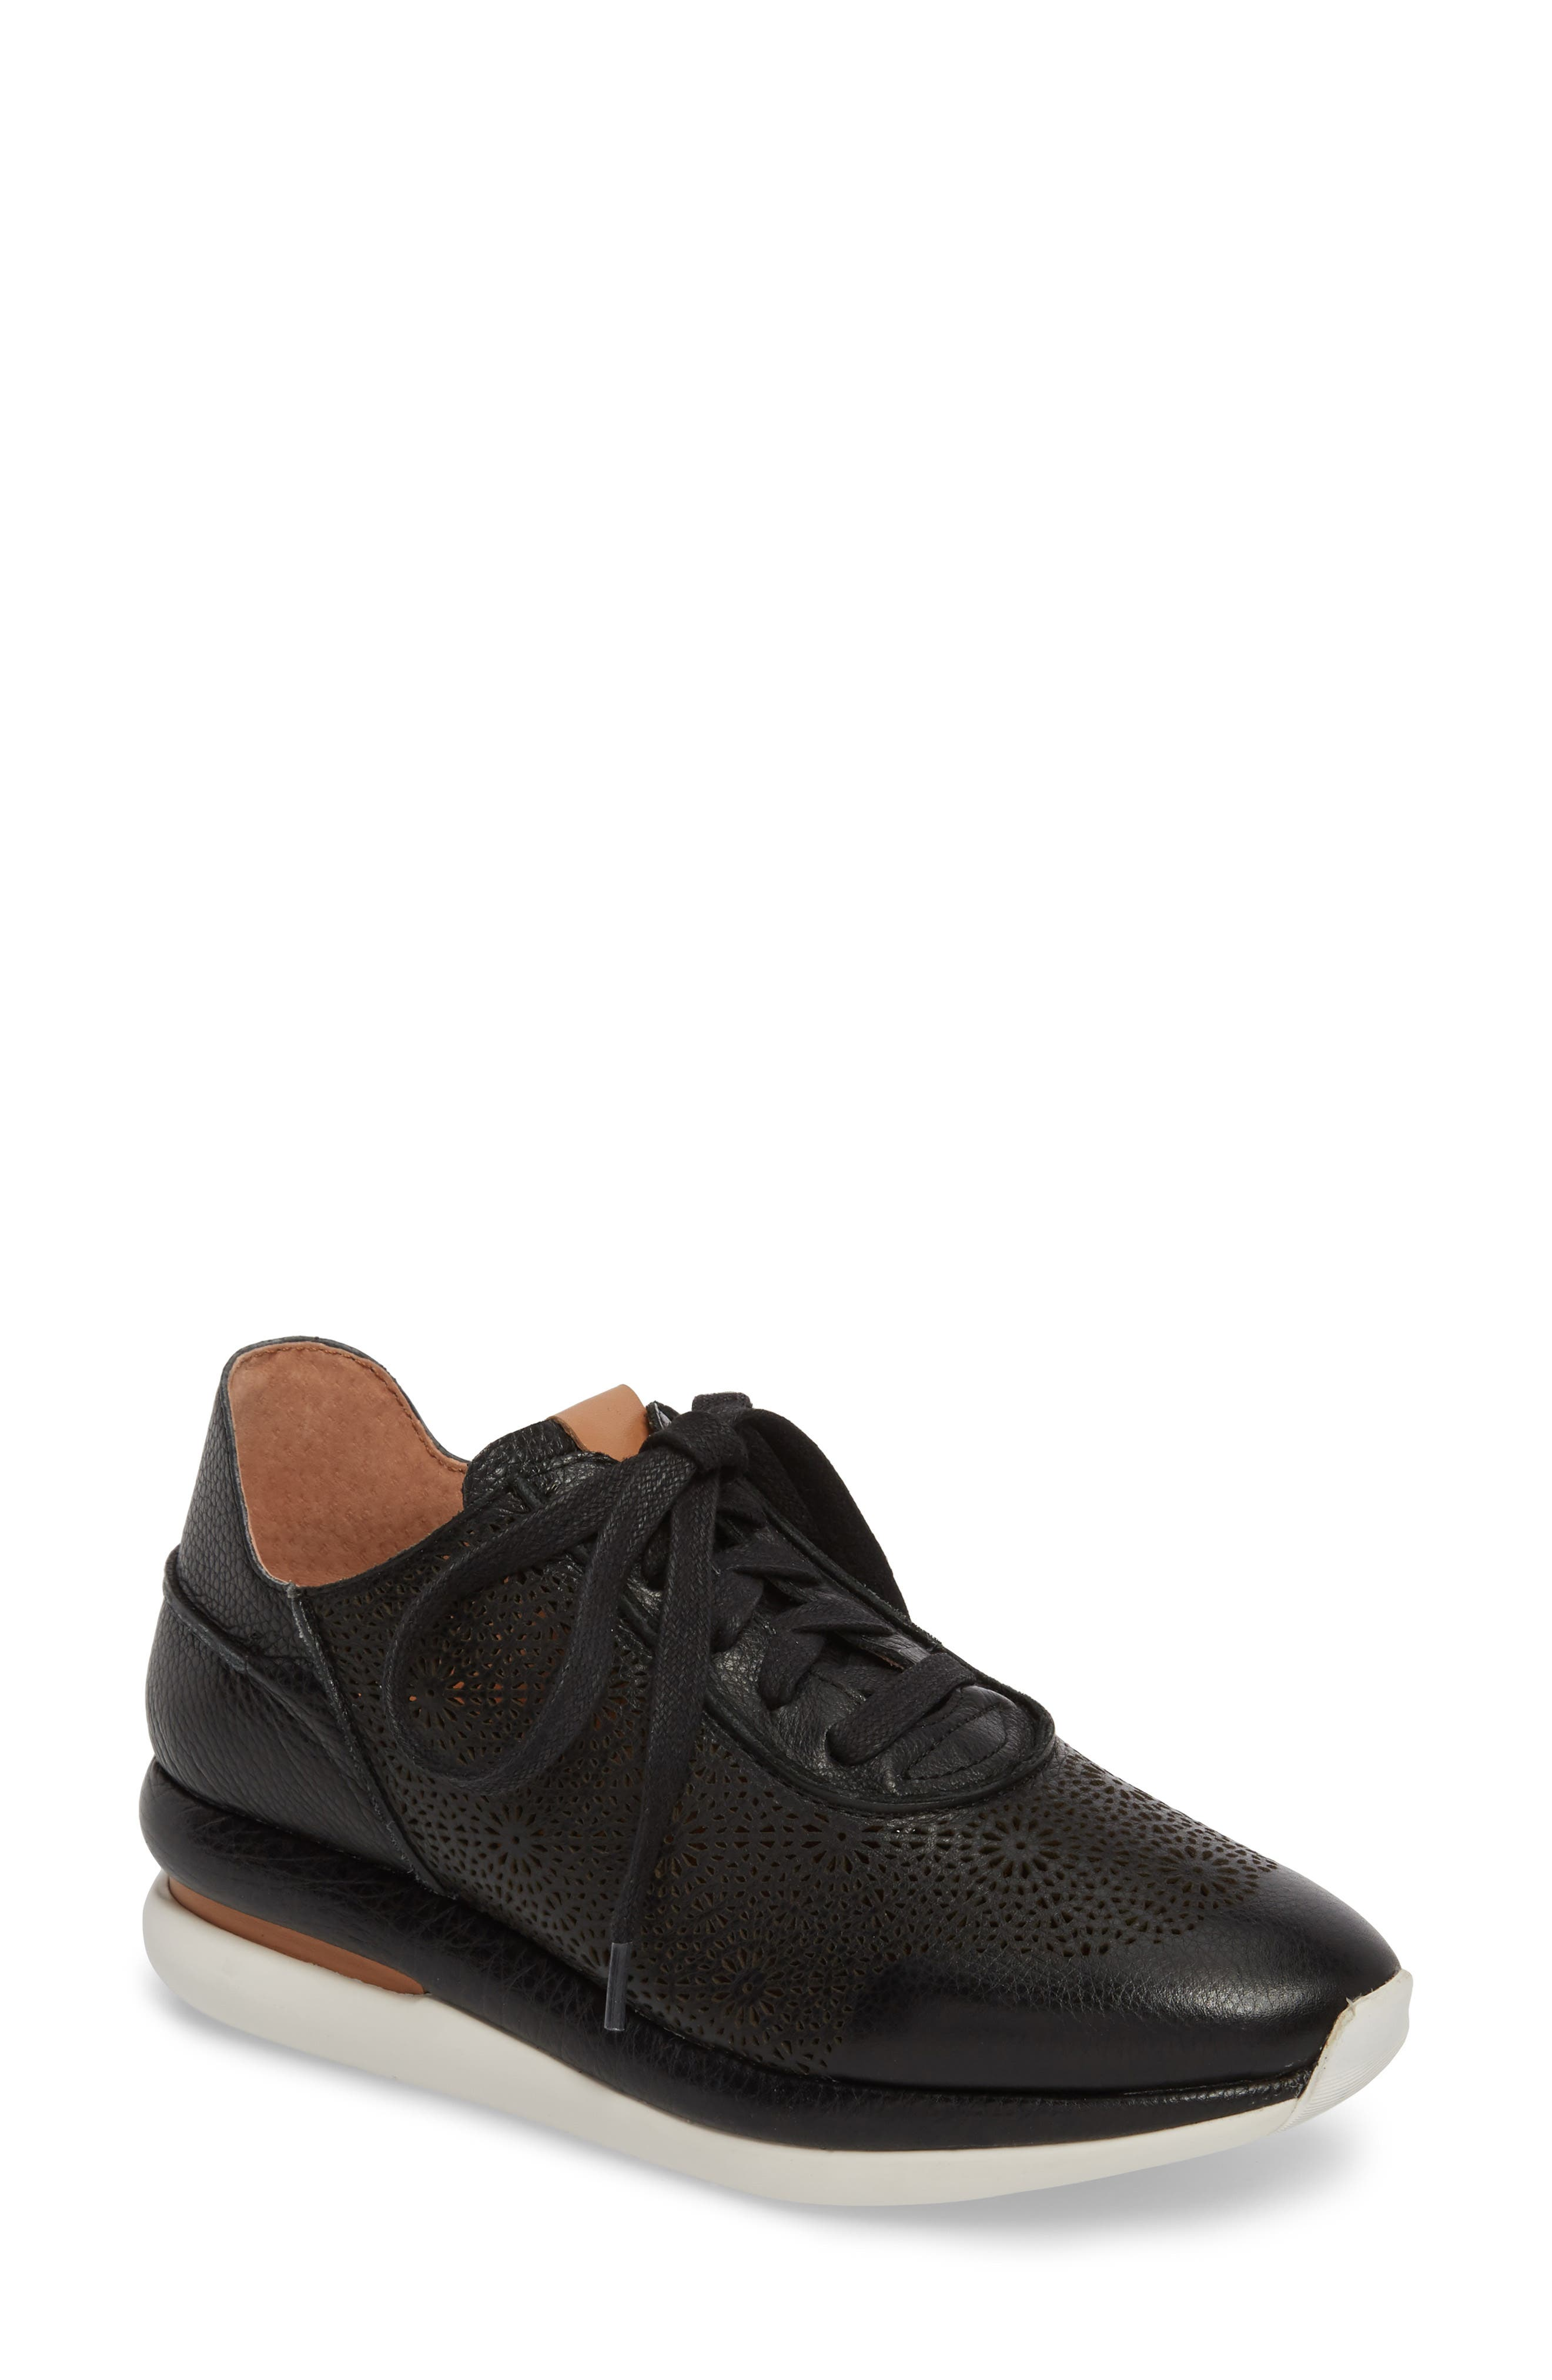 GENTLE SOULS BY KENNETH COLE Raina II Sneaker, Main, color, BLACK LEATHER